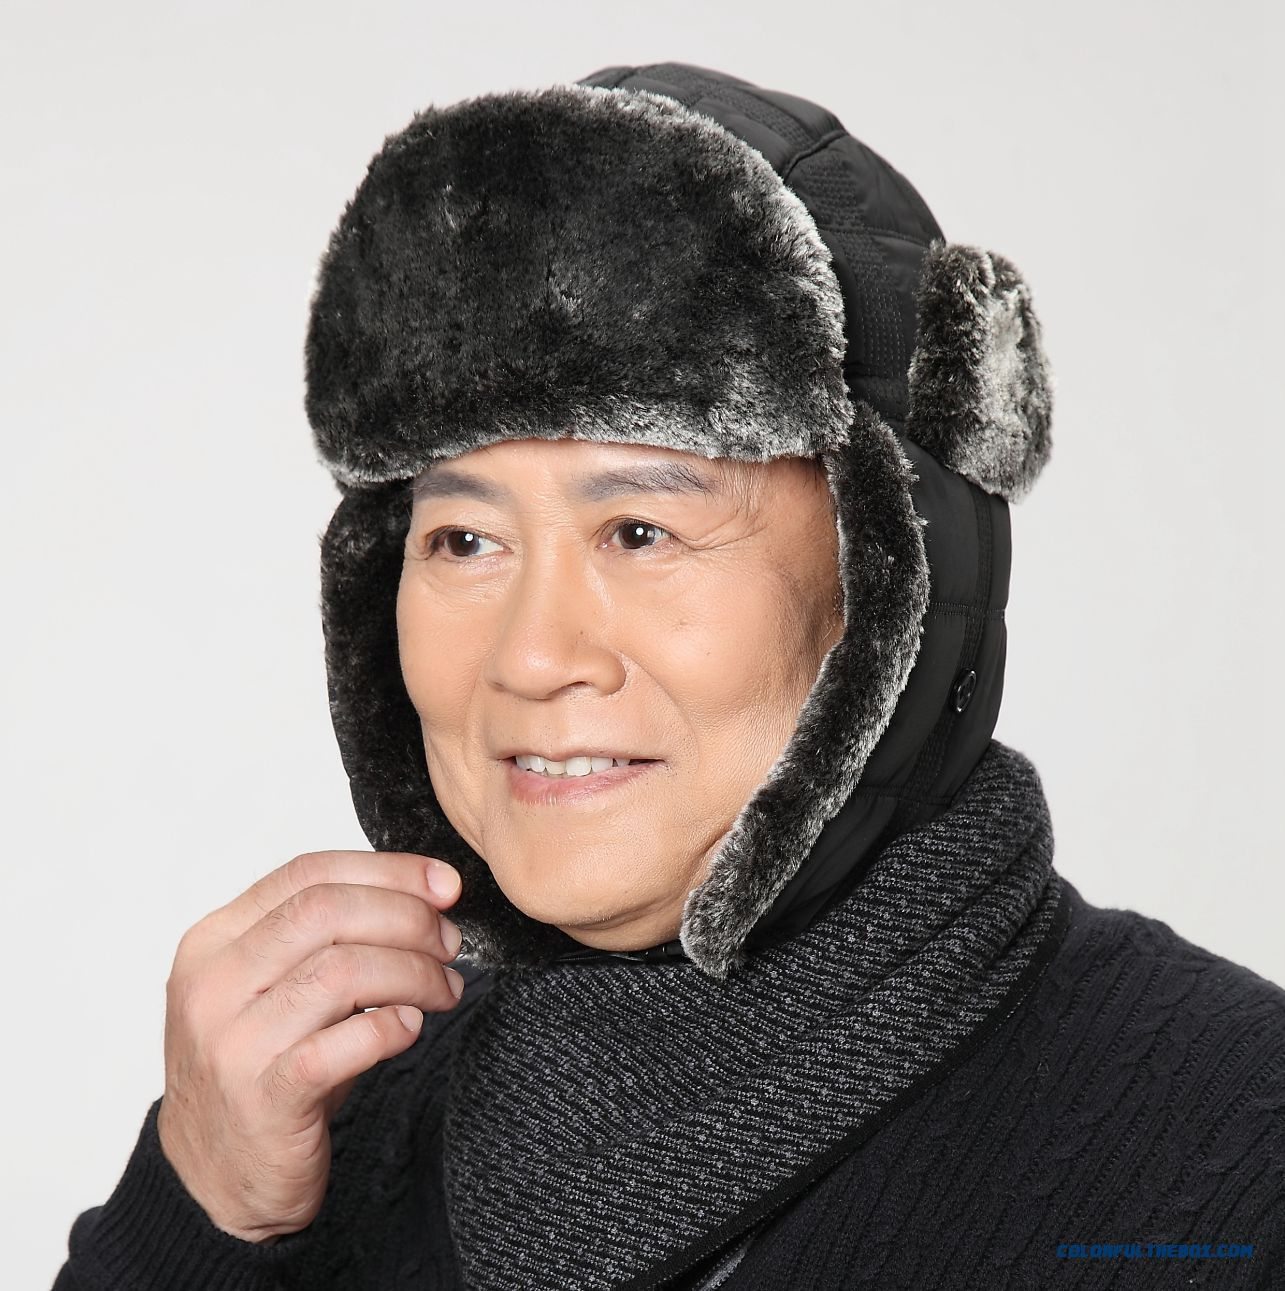 New Cold-proof Of Middle-aged Men's Hats Lei Feng Hat With Protect Ear Function